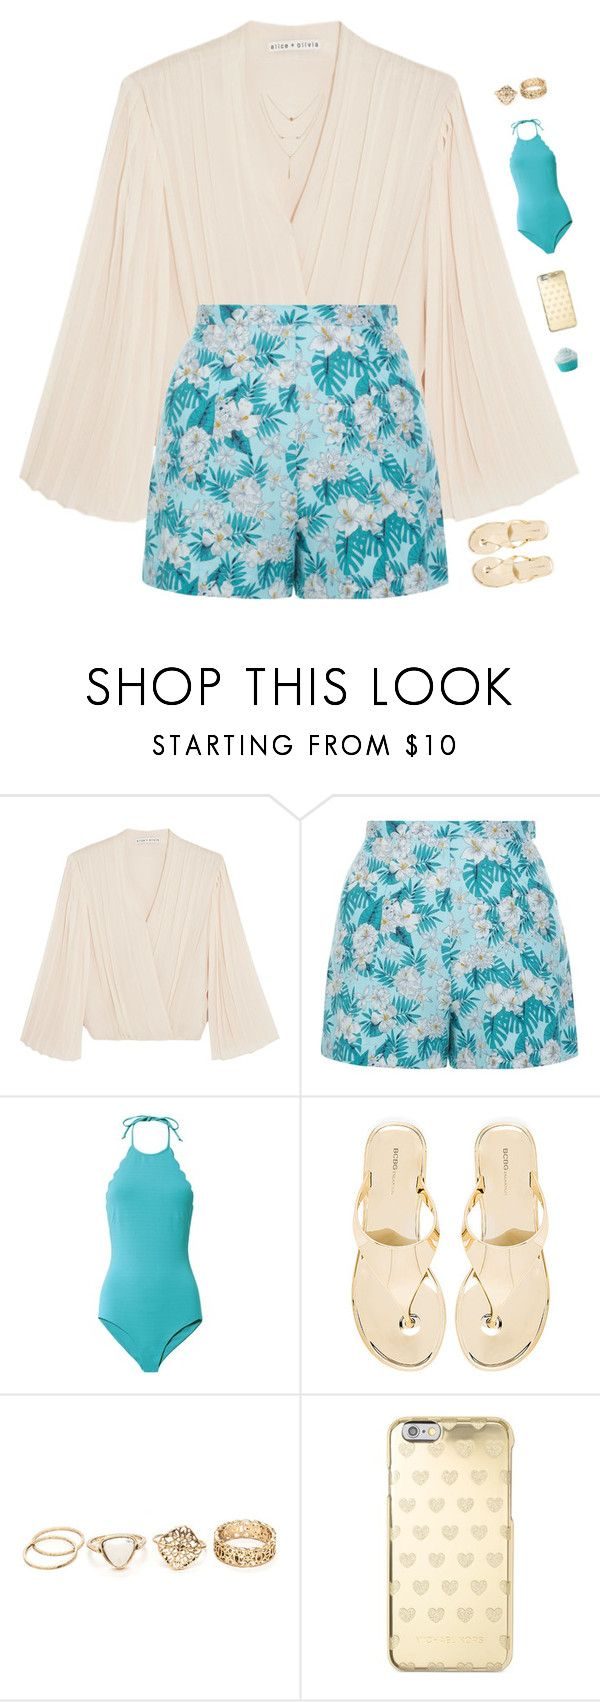 """""""Hawaii, here I come!"""" by genesis129 ❤ liked on Polyvore featuring Alice + Olivia, New Look, Marysia Swim, BCBGeneration, Michael Kors and vintage"""